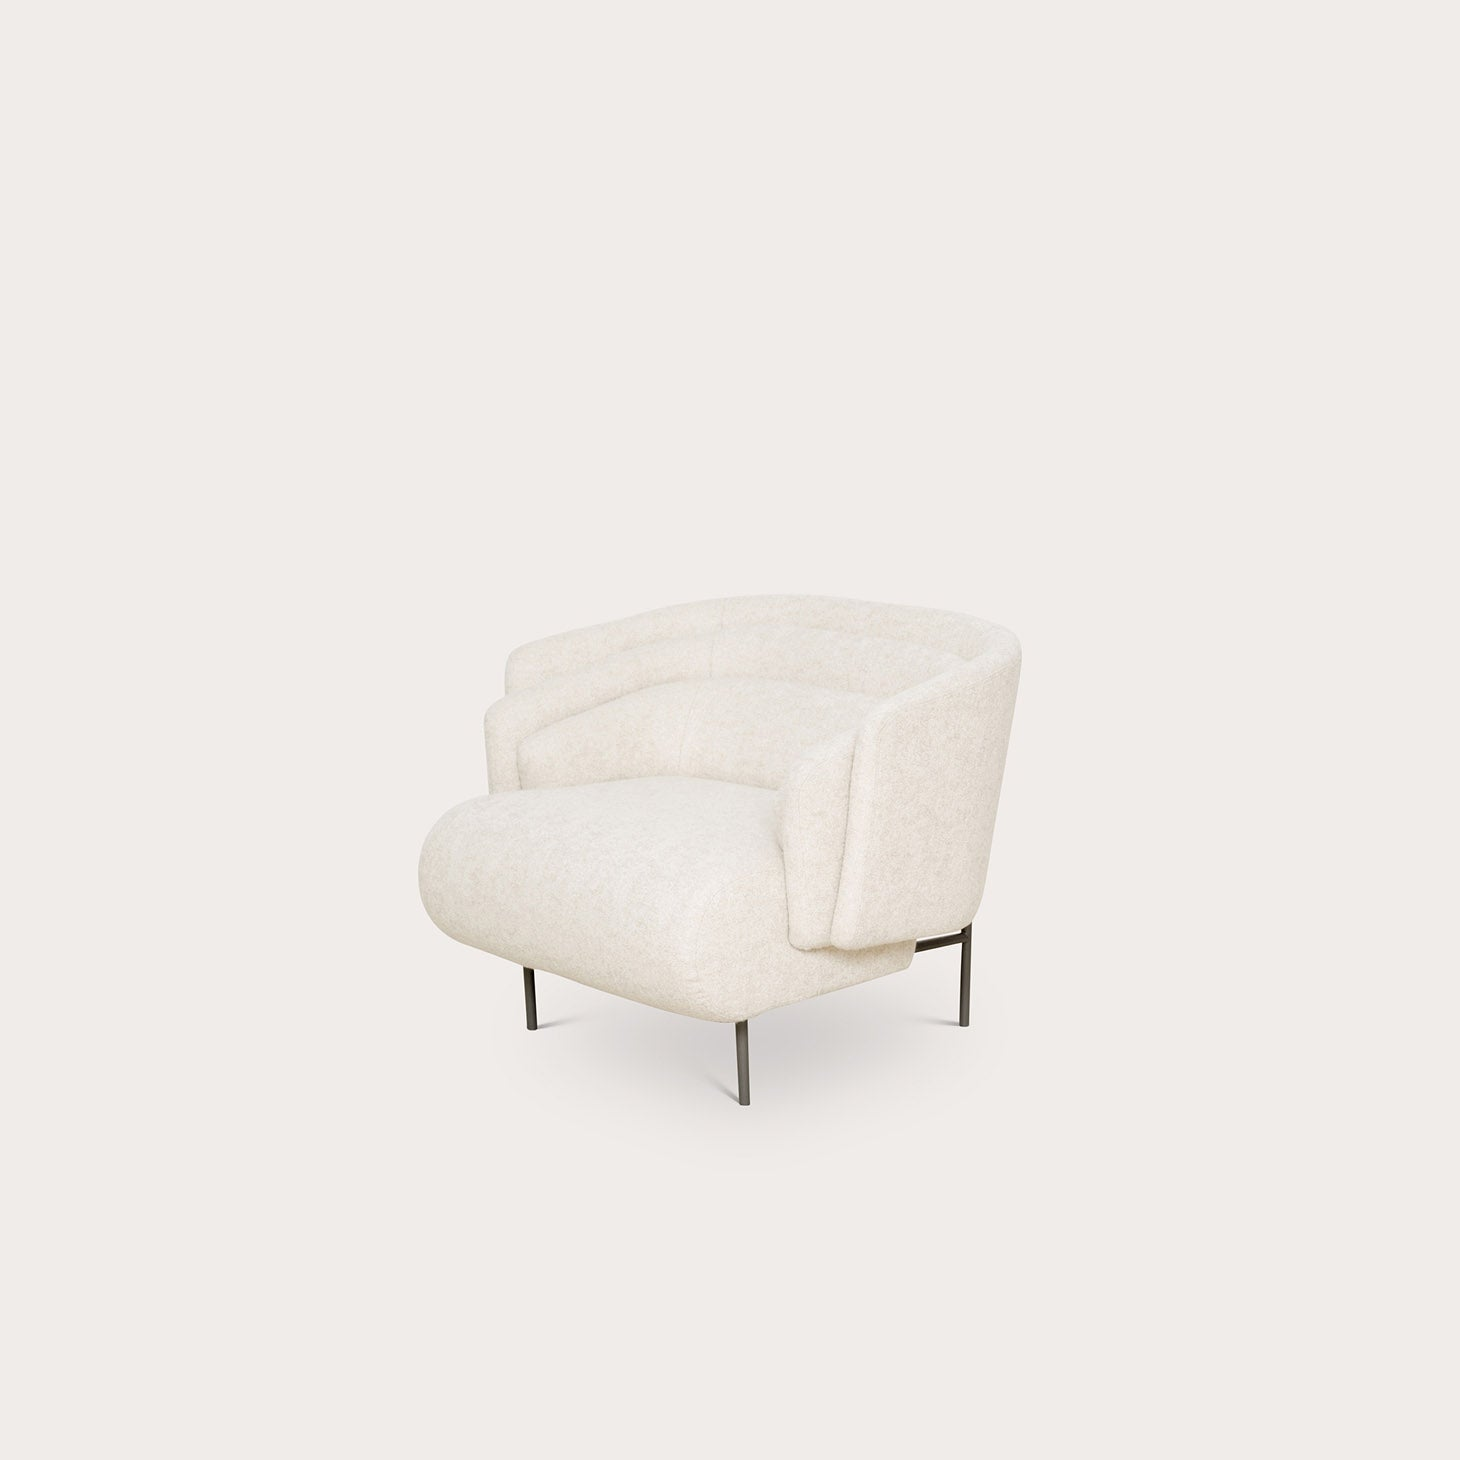 HUG Seating Christophe Delcourt Designer Furniture Sku: 008-240-10117